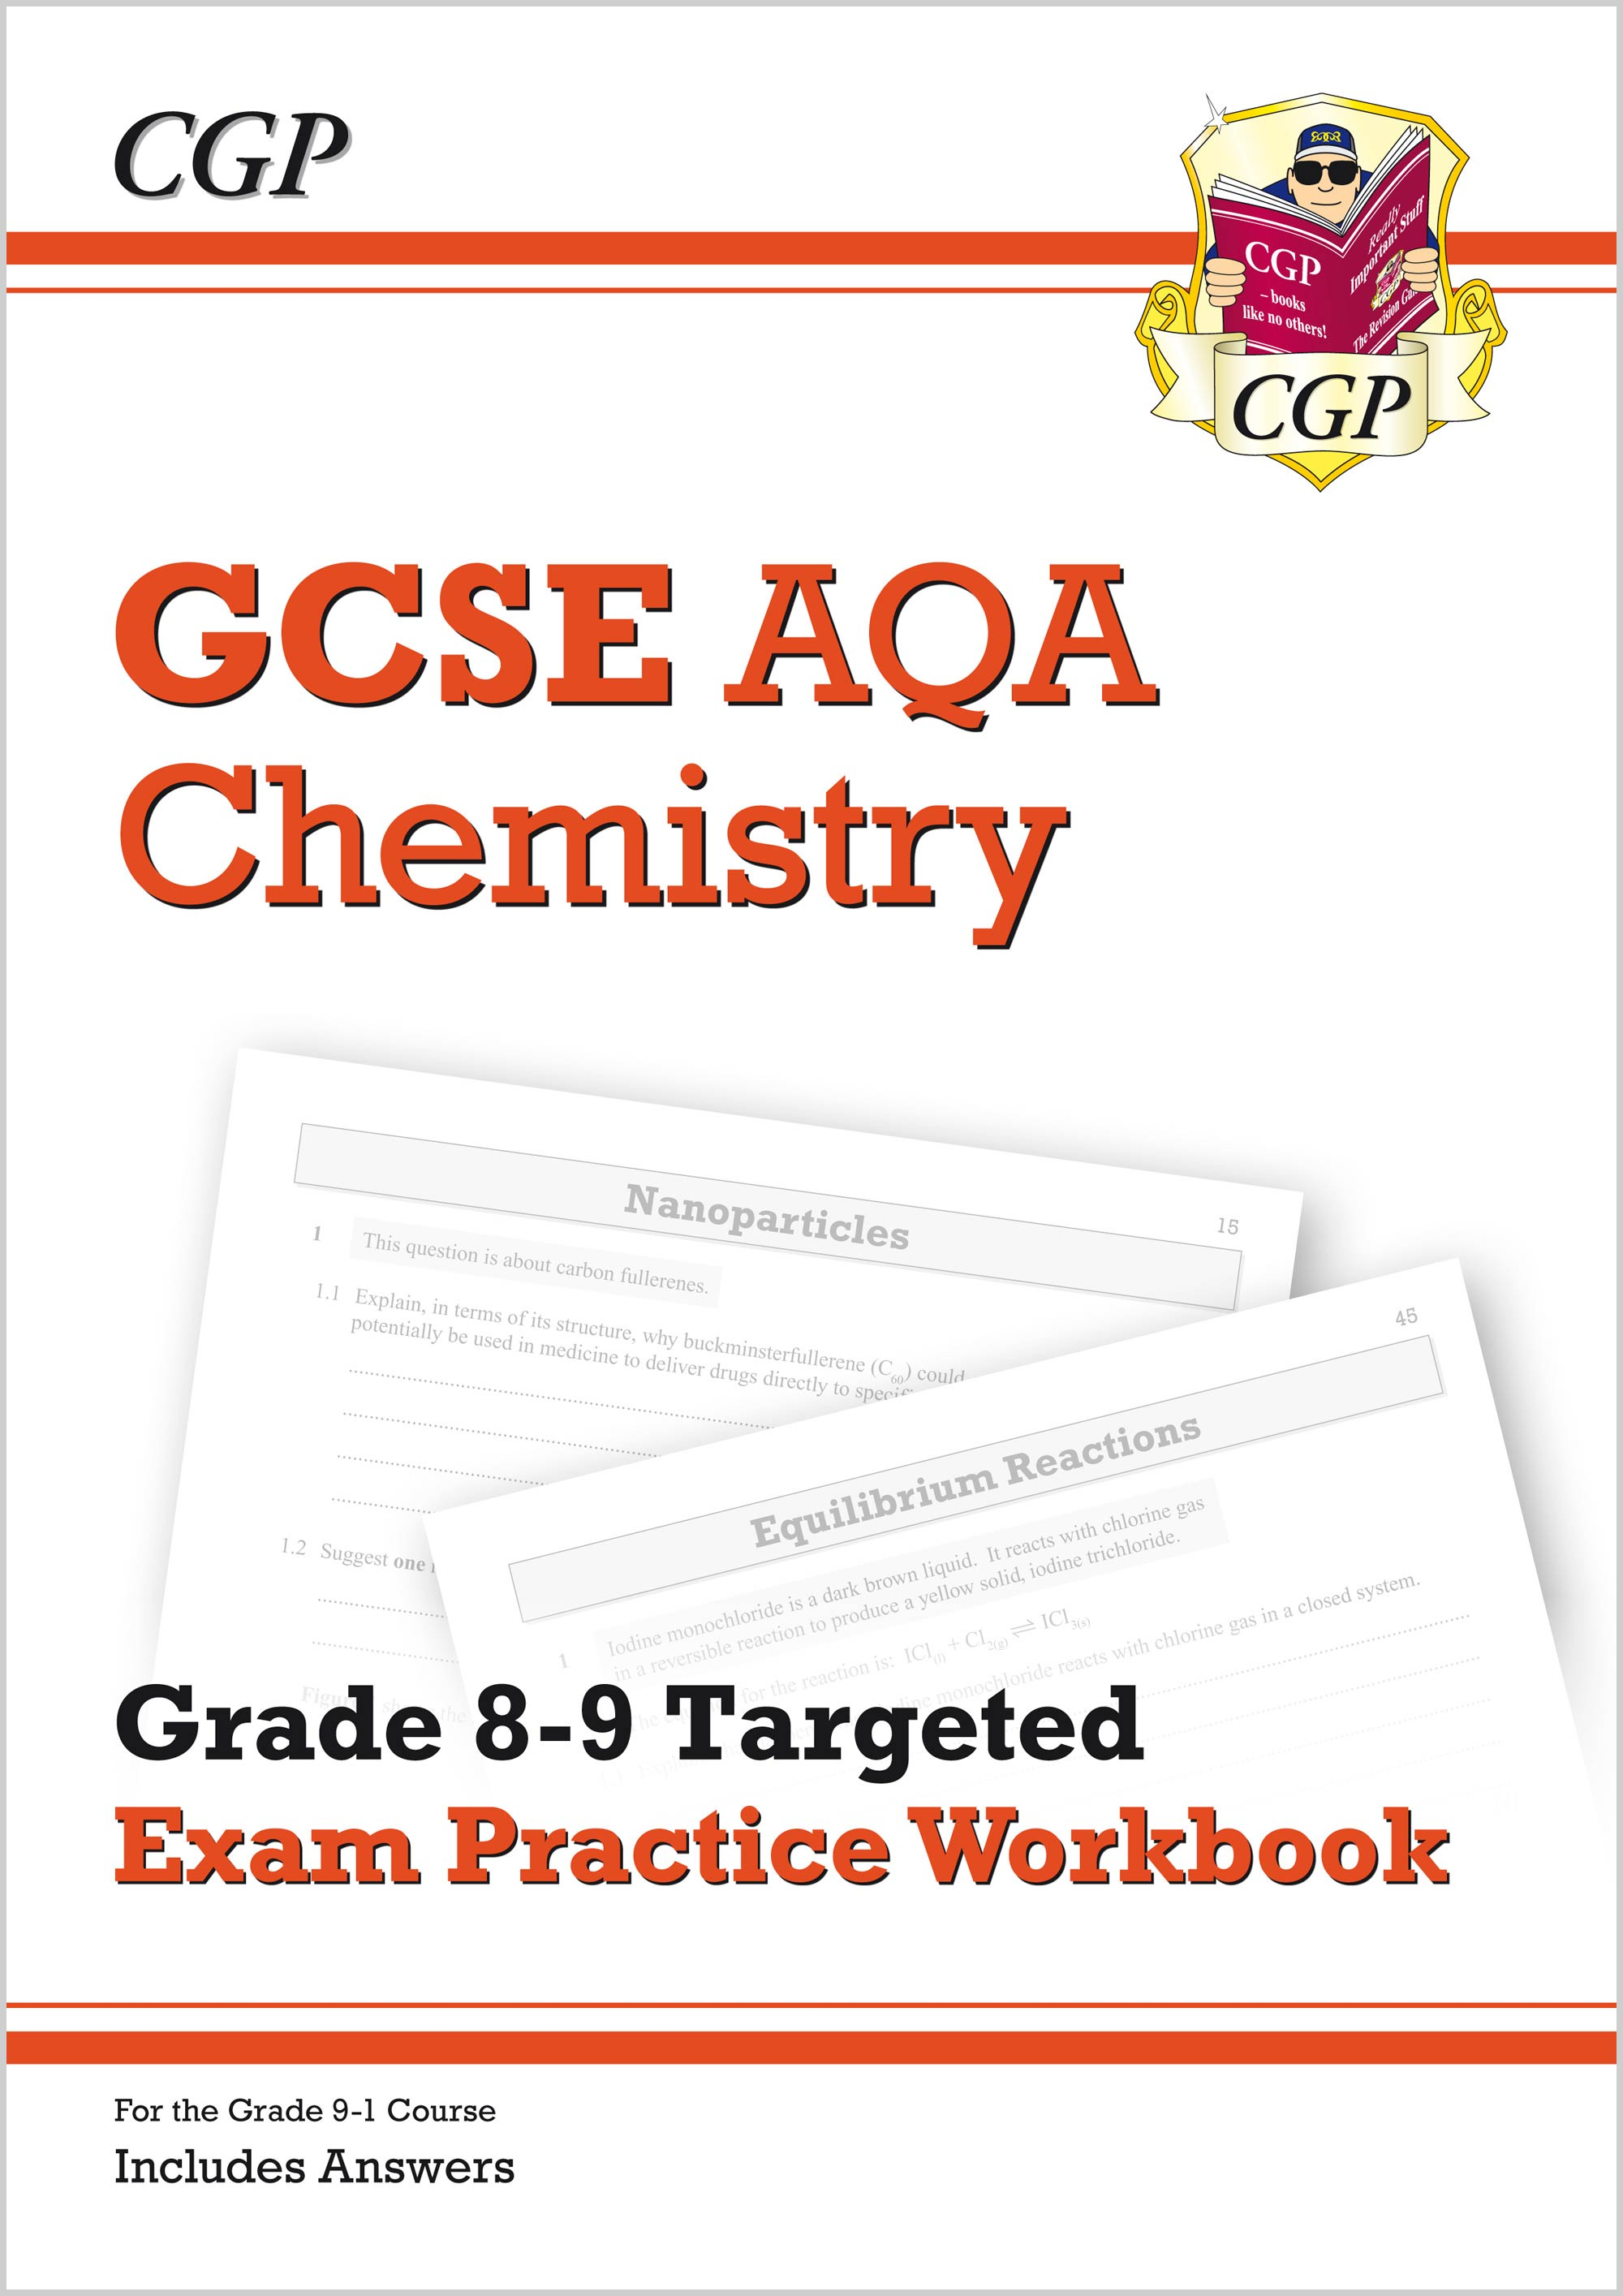 CA9Q41 - New GCSE Chemistry AQA Grade 8-9 Targeted Exam Practice Workbook (includes Answers)